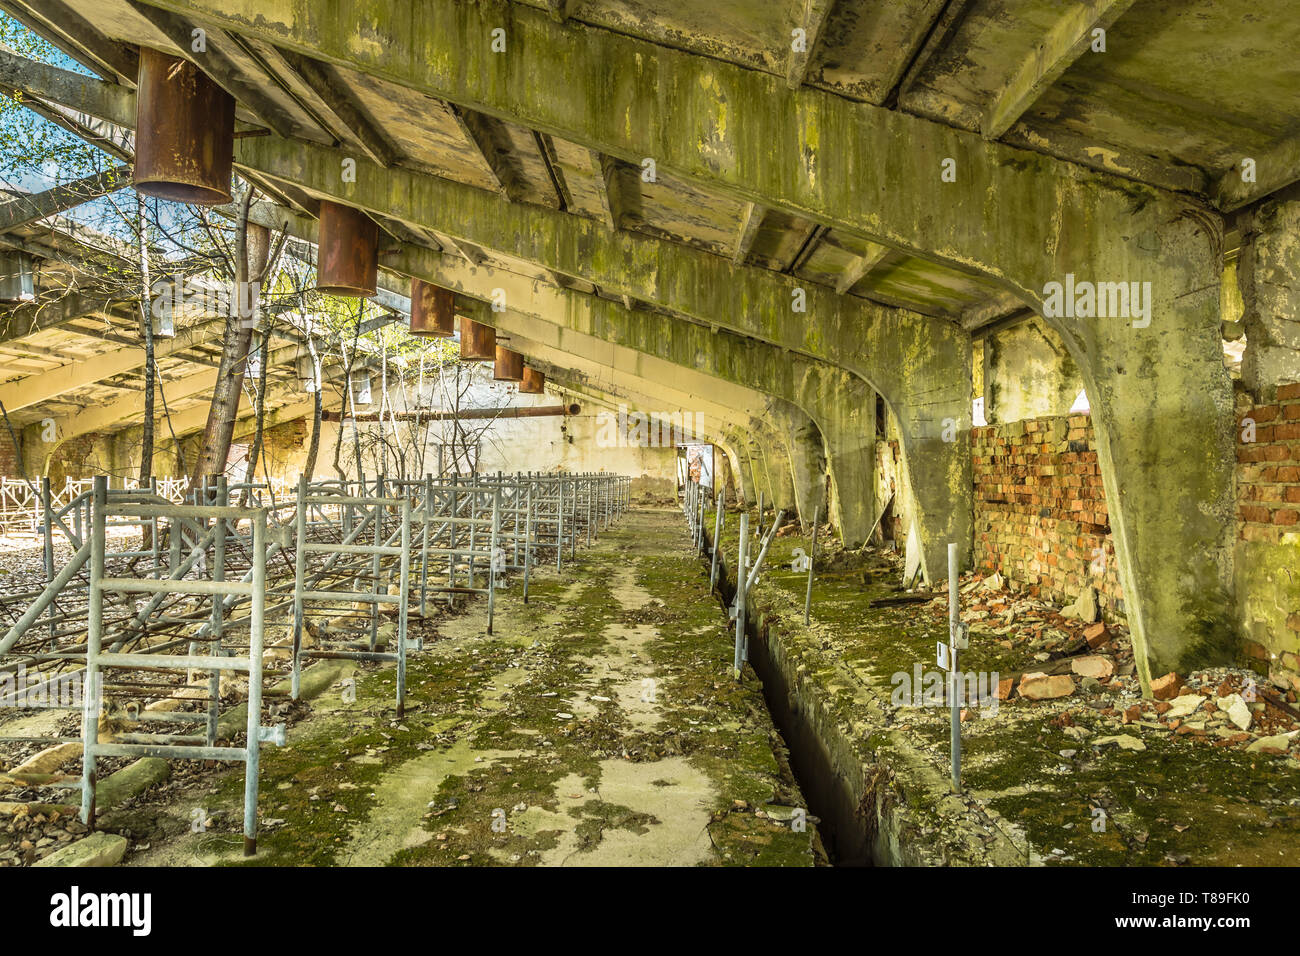 Abandoned farm overgrown with trees in Belarus Chernobyl exclusion zone, recently opened for the public from april 2019. - Stock Image